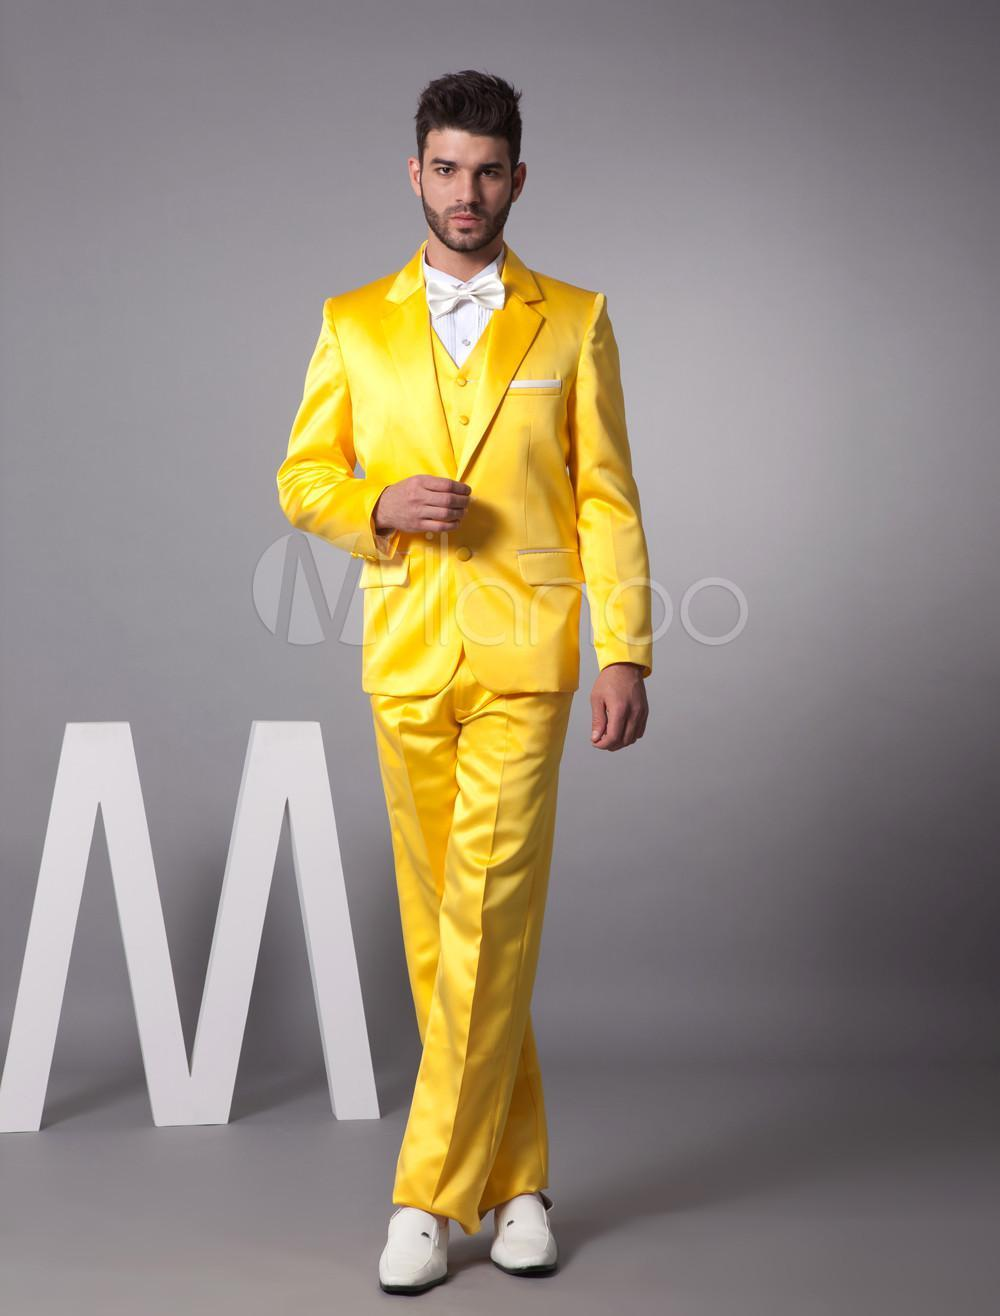 Guys Suits For Prom - Go Suits